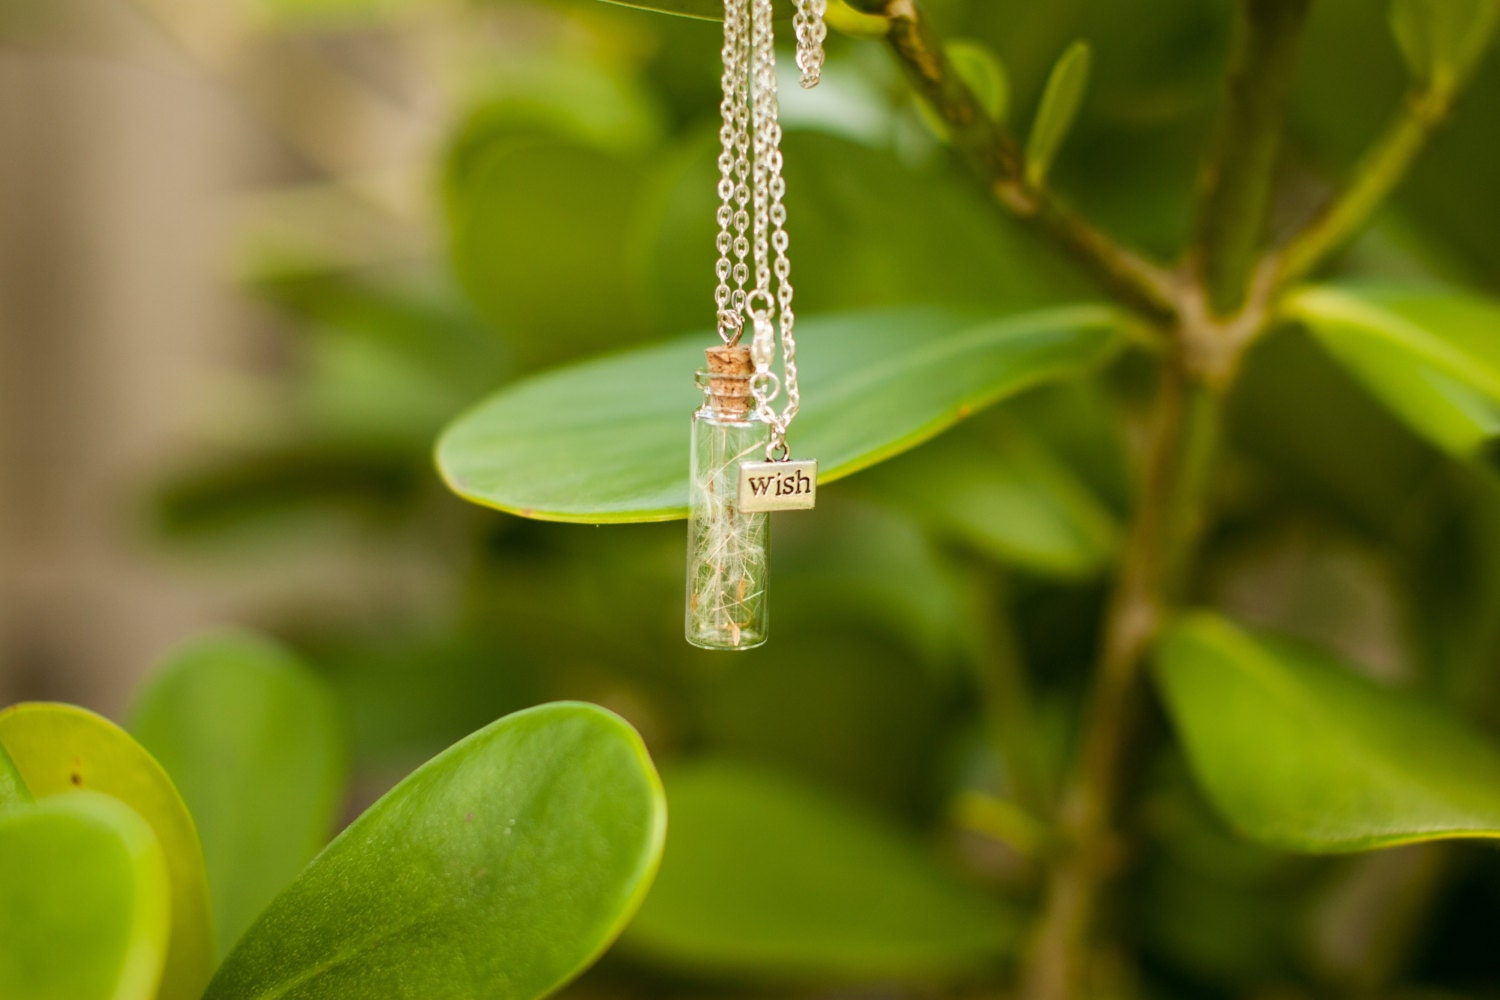 Wish Necklace Make a Wish Necklace with Dandelion flower seeds